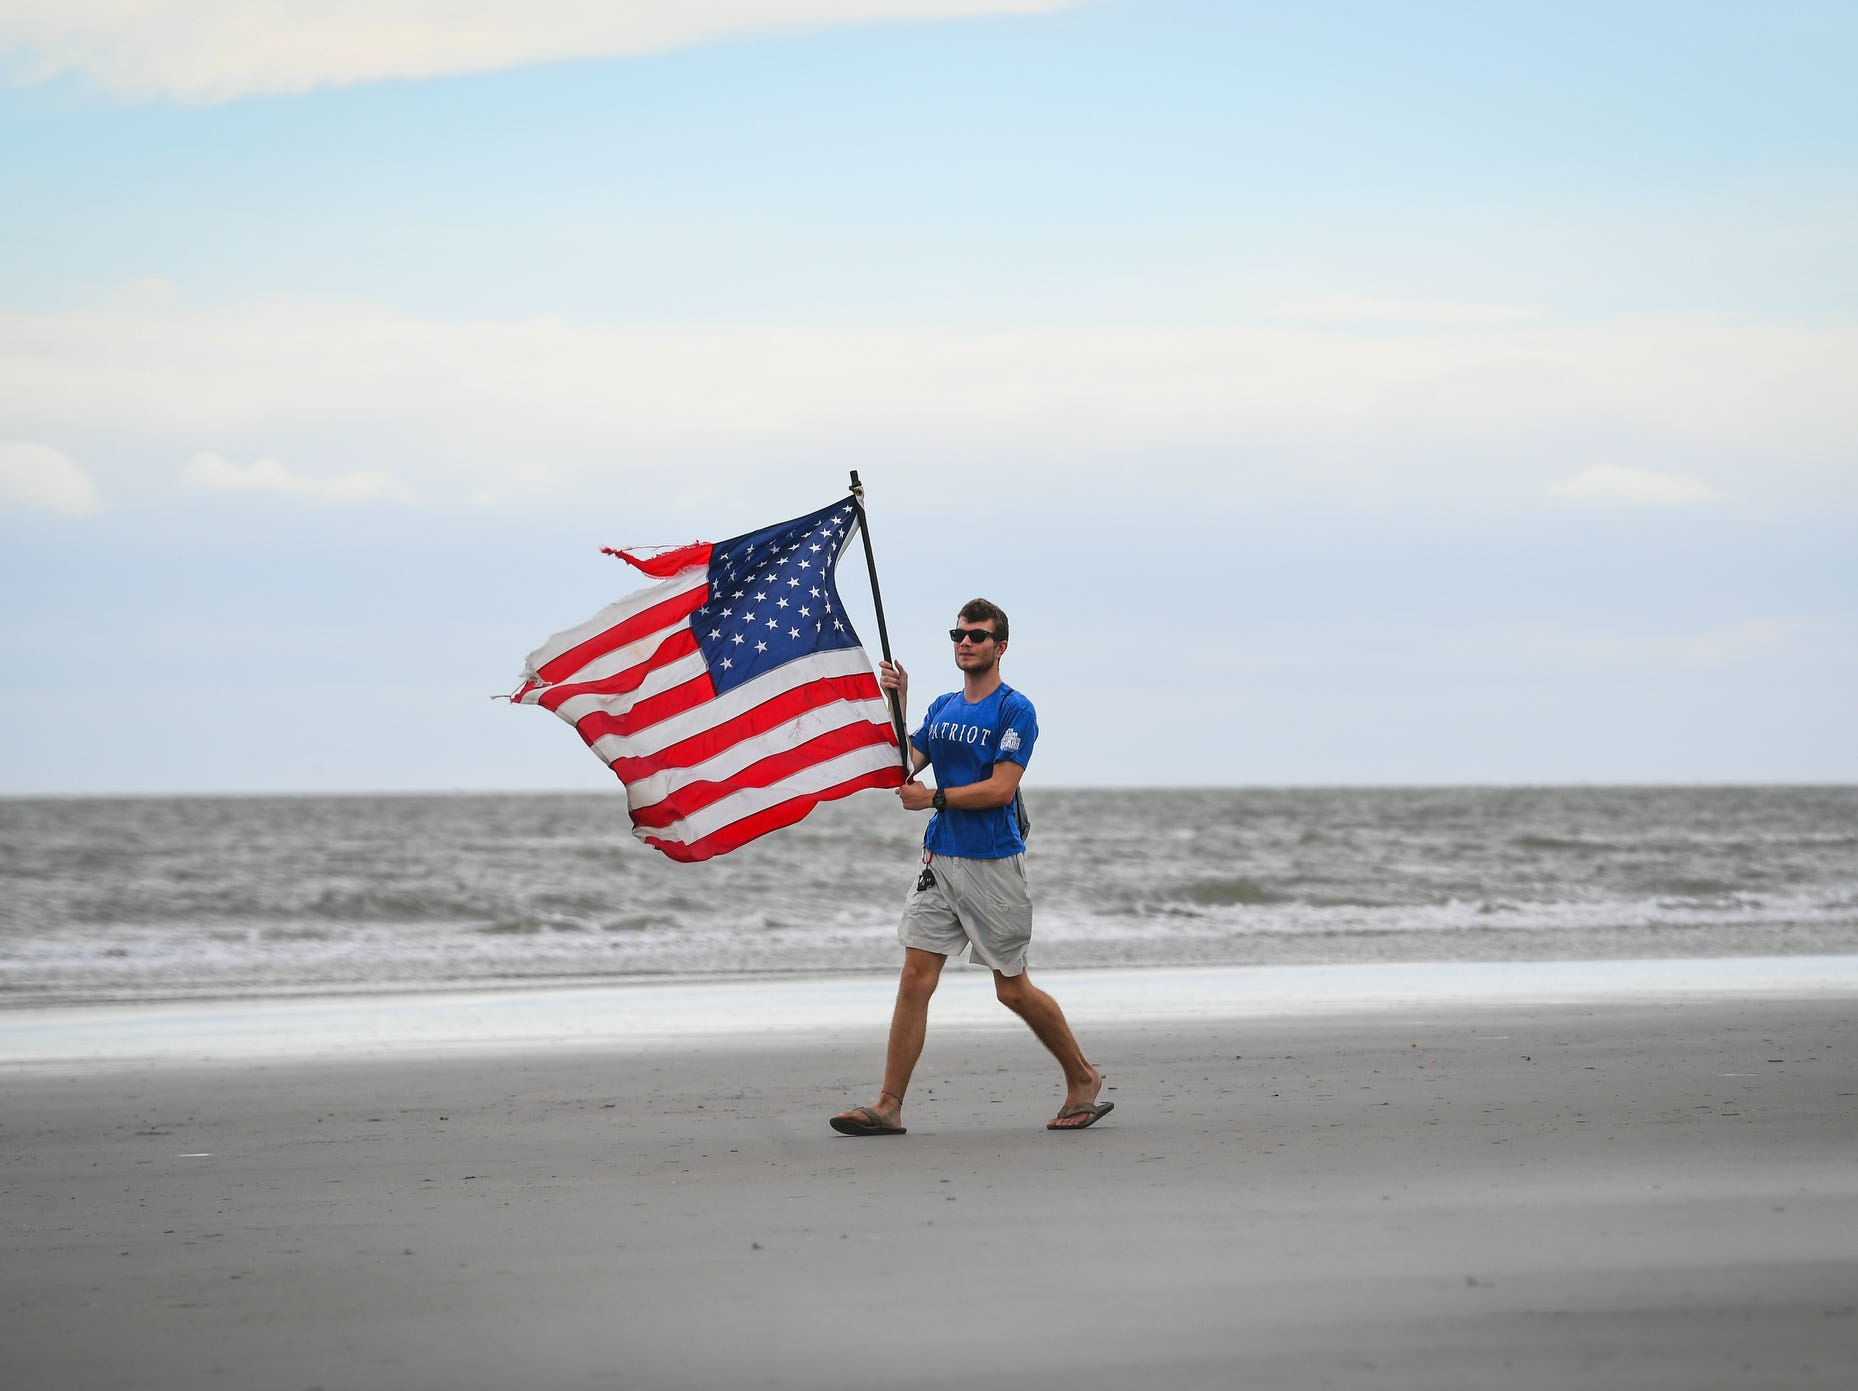 Mason Moise, 18, from Charleston, S.C.,  carries a U.S. flag in the increasing winds on Isle of Palms Beach Friday afternoon prior to the arrival of Hurricane Florence.